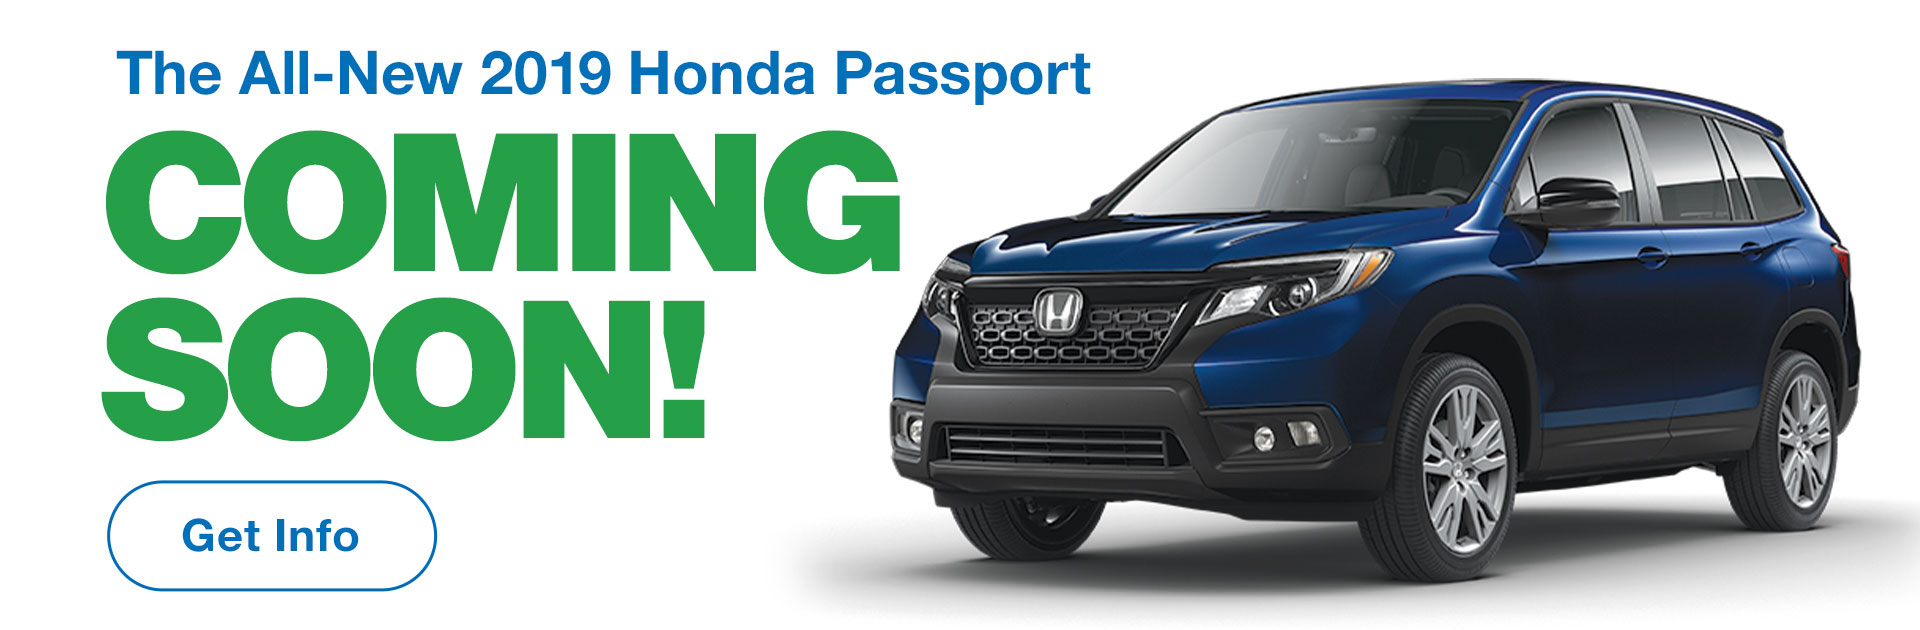 The All-New 2019 Honda Passport Coming Soon!